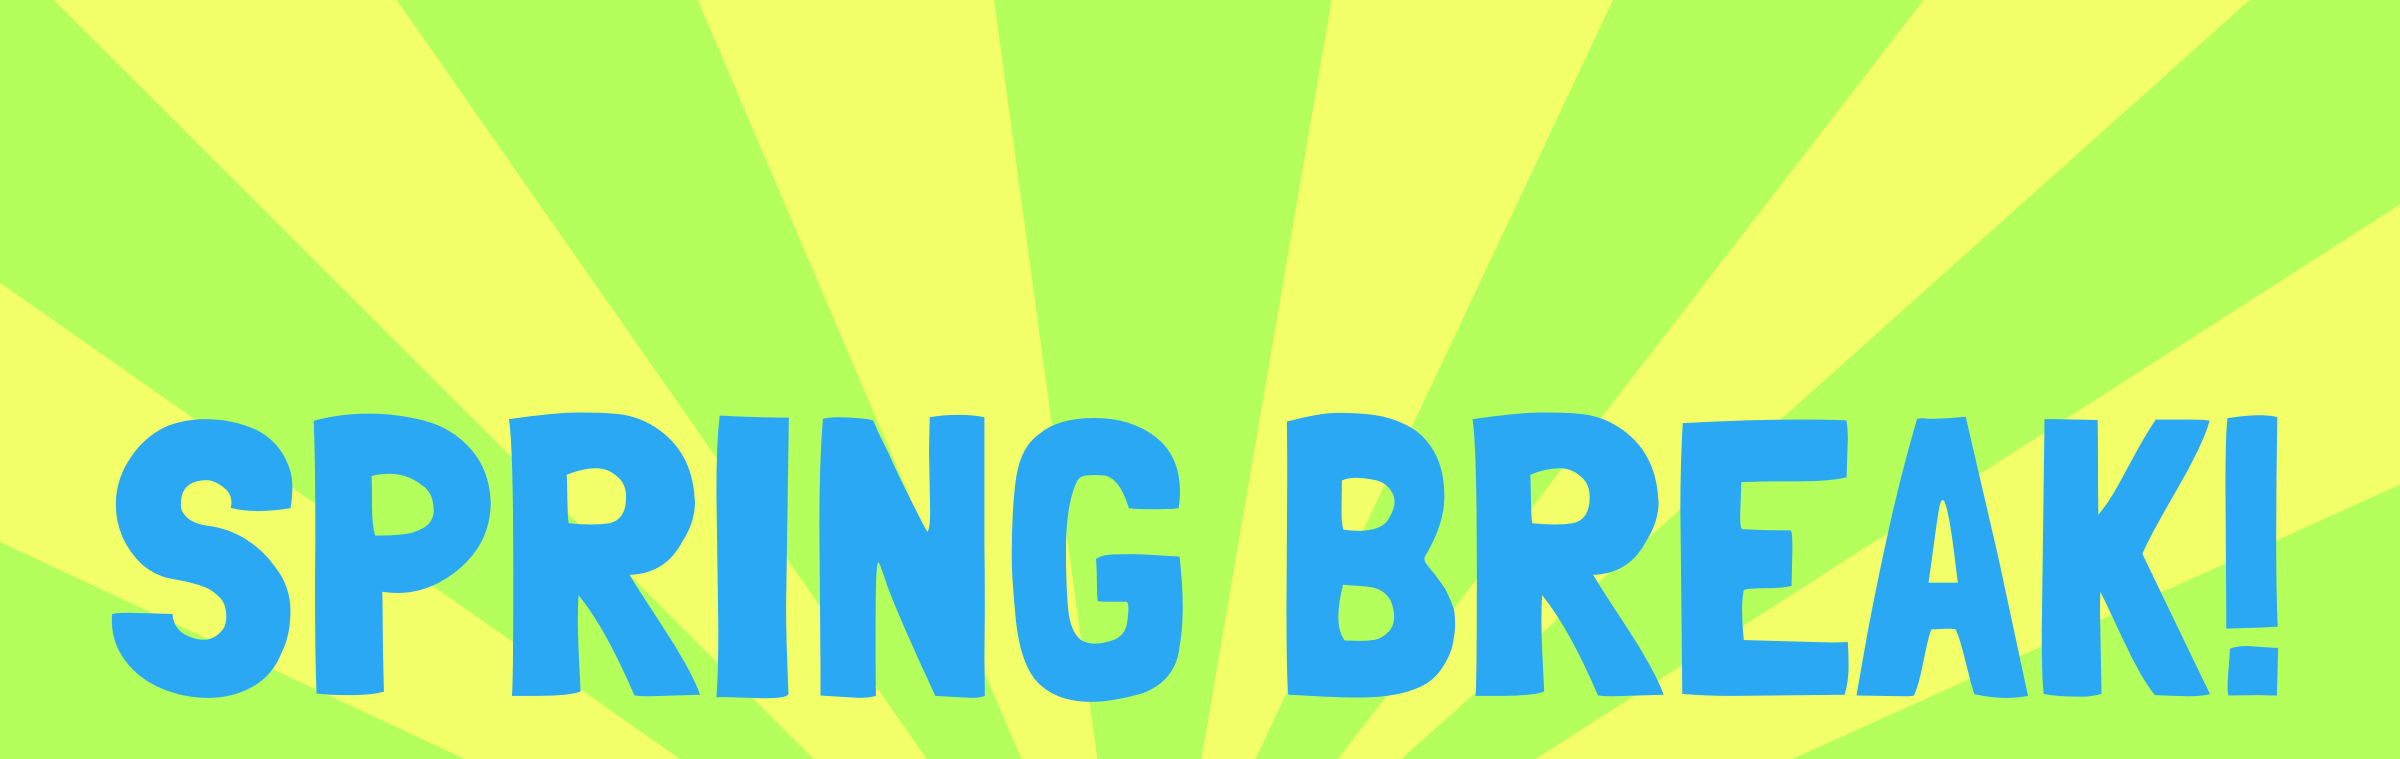 Spring Break Clipart Clipart - spring break